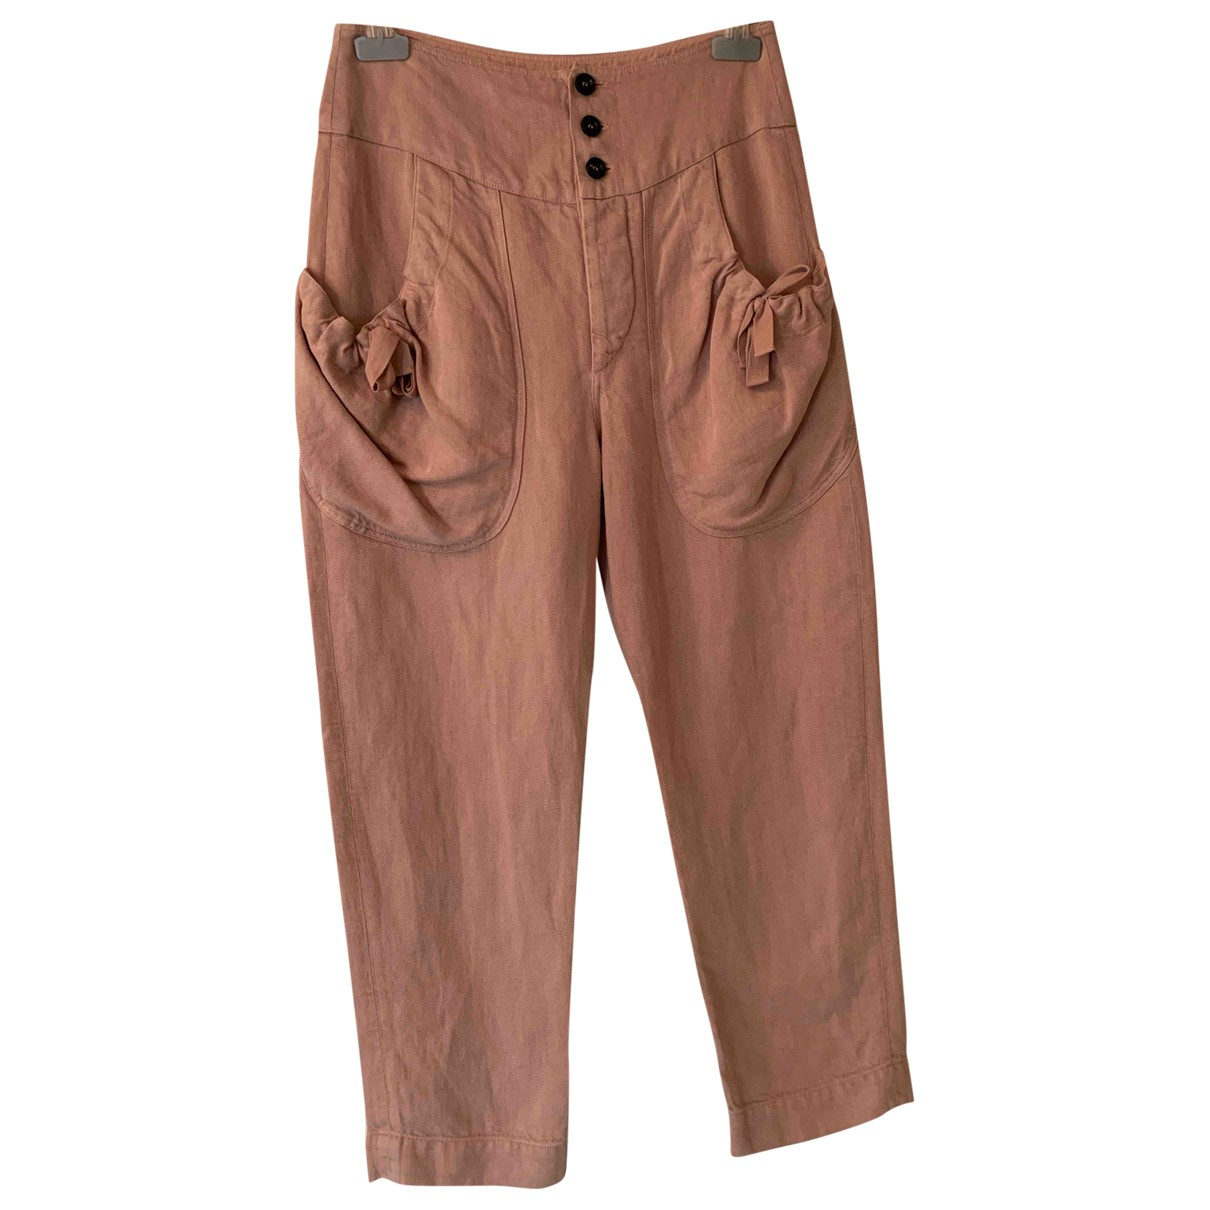 Isabel Marant Etoile \N Pink Cotton Trousers for Women 36 FR